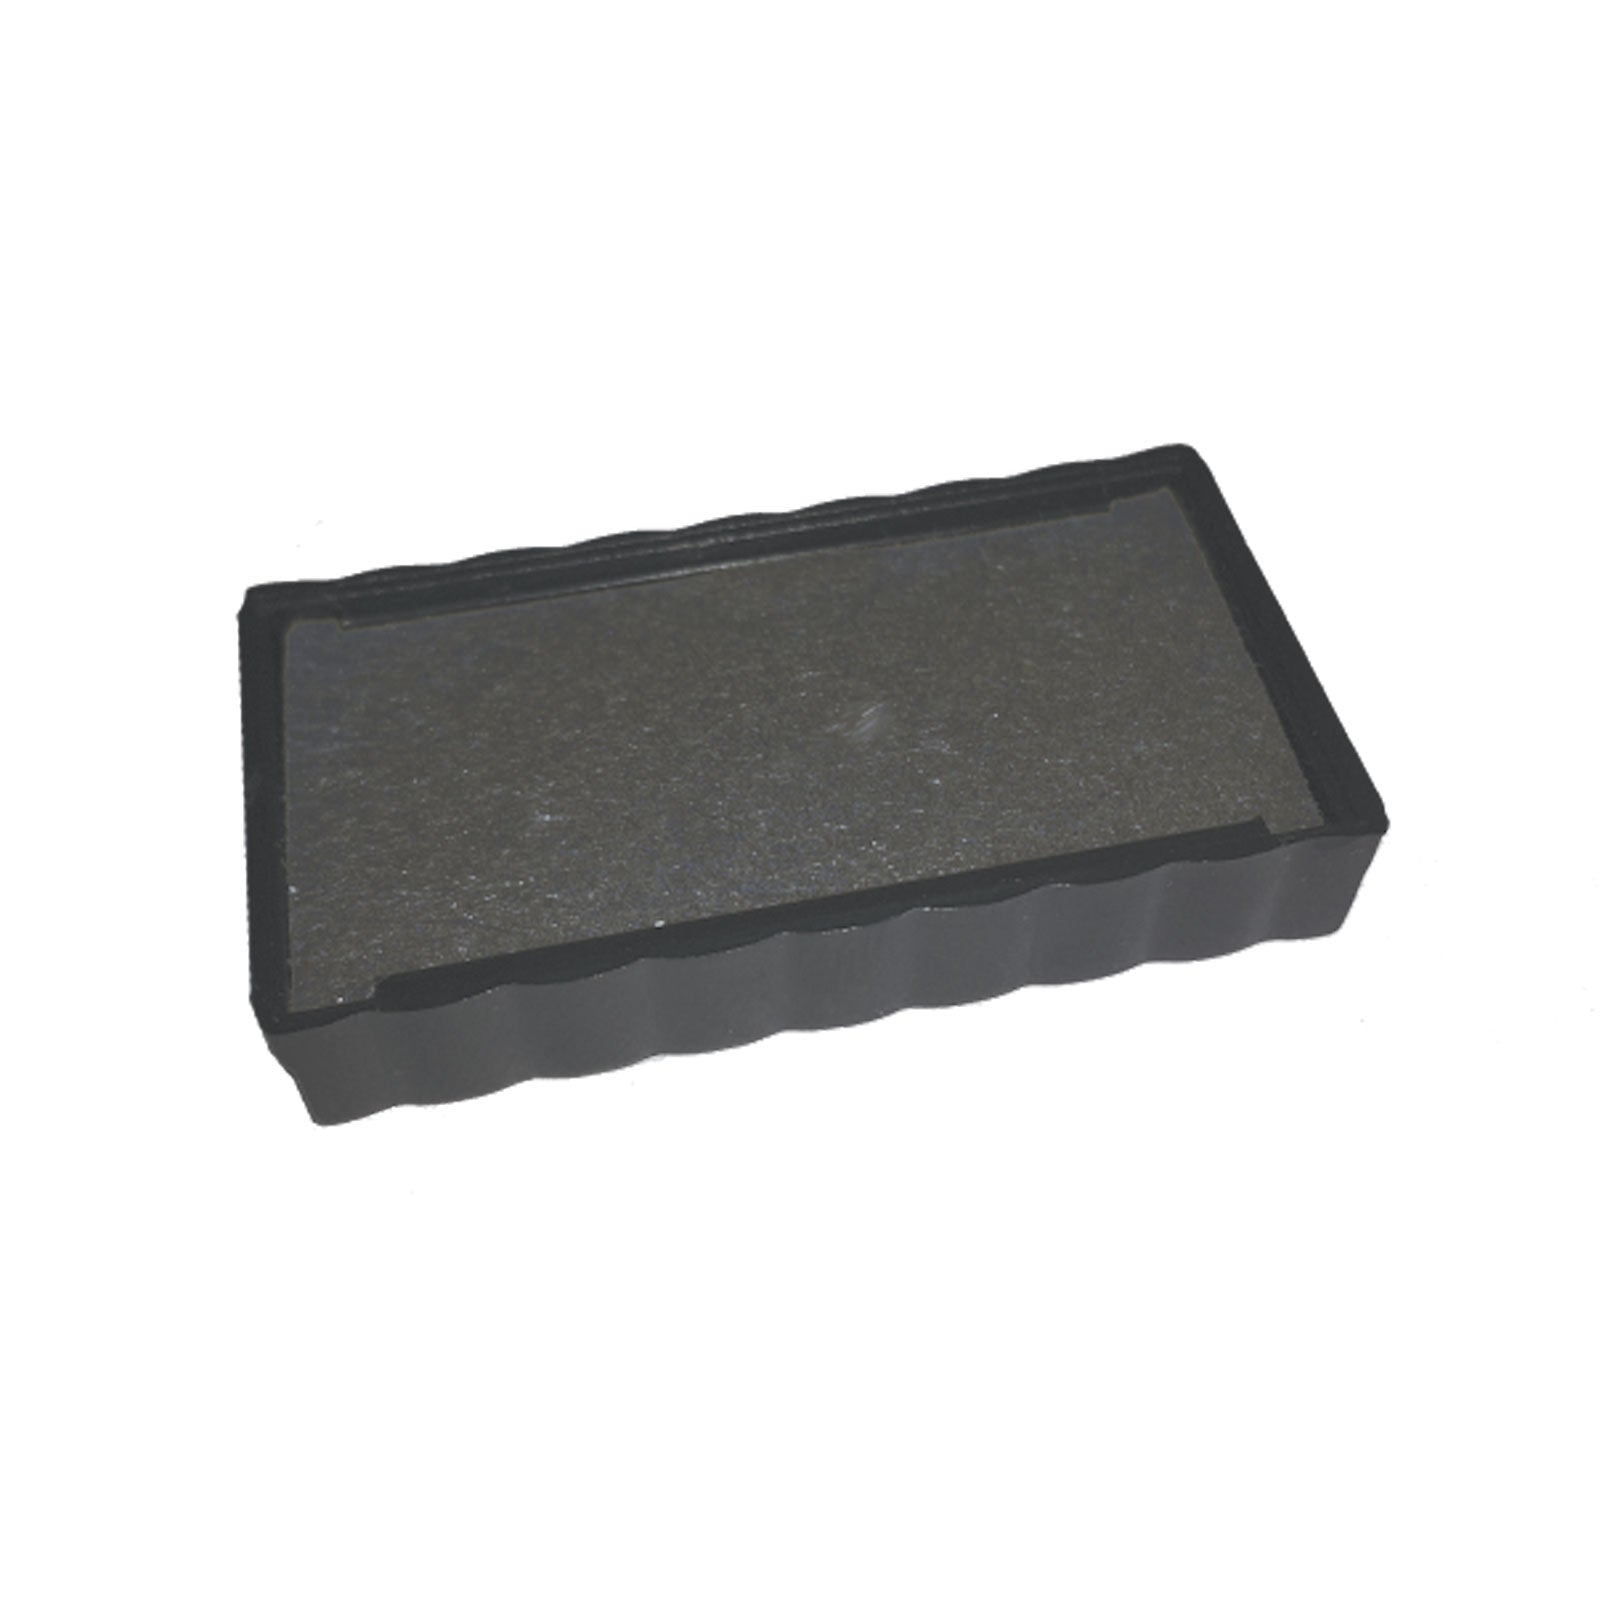 Traxx 7/9012 Replacement Ink Pad